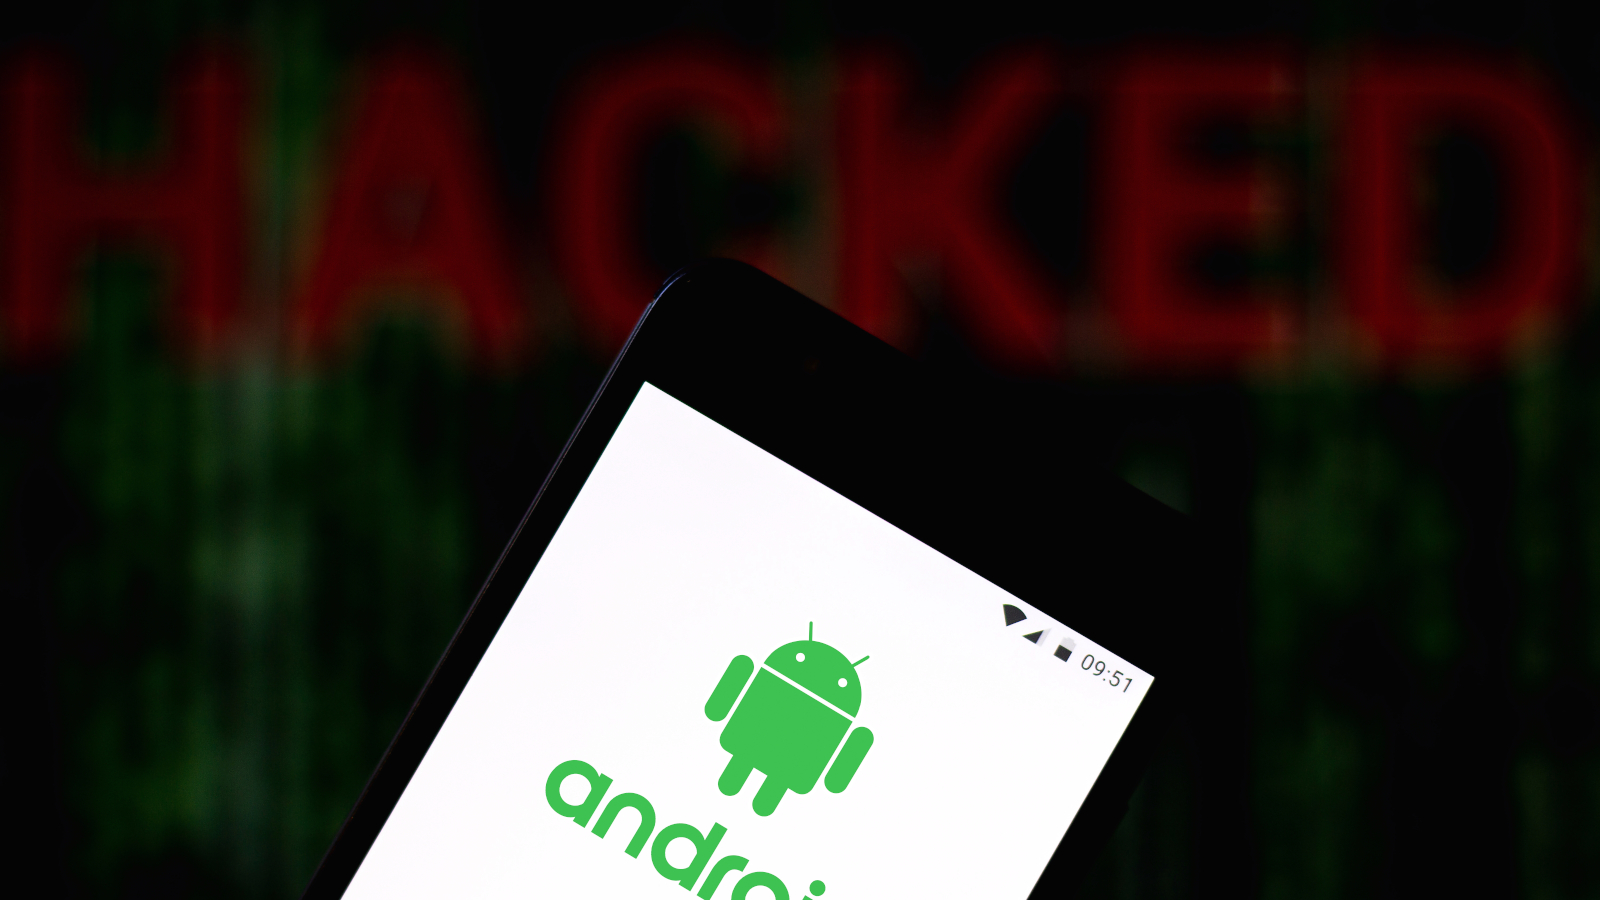 This is the Most Dangerous Android Applications Store Out There - TechNadu